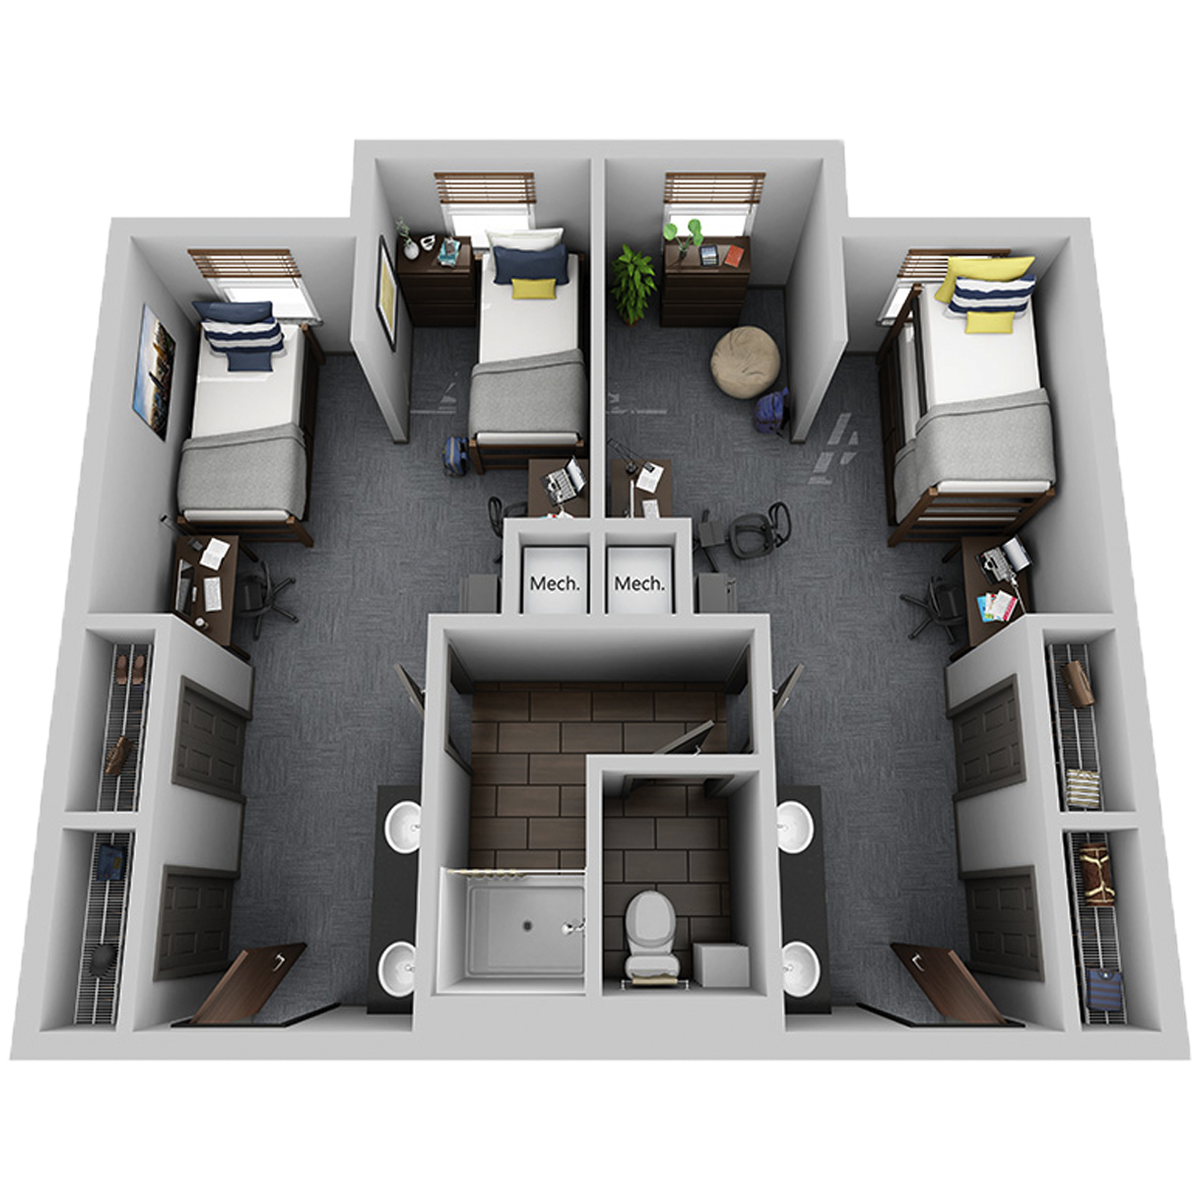 4 person suite photo overhead view